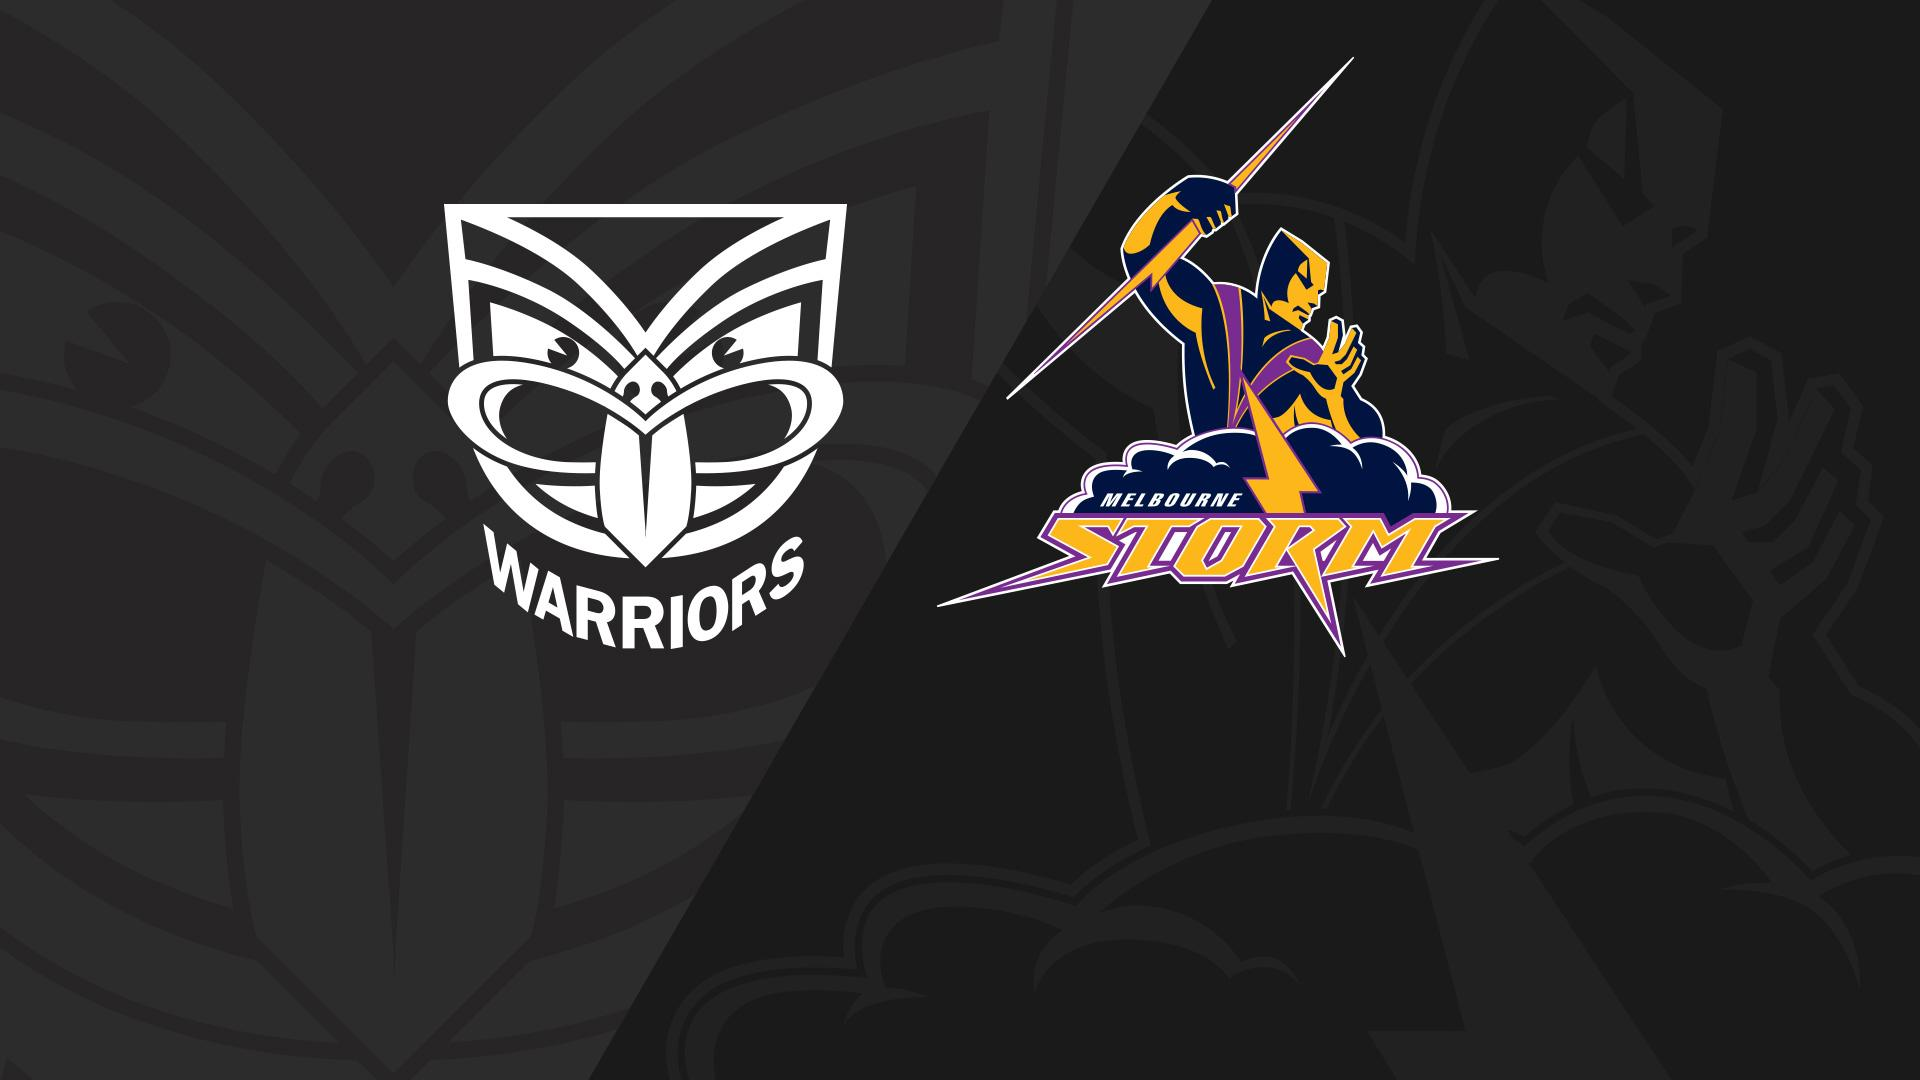 Full Match Replay: Warriors v Storm - Round 19, 2018